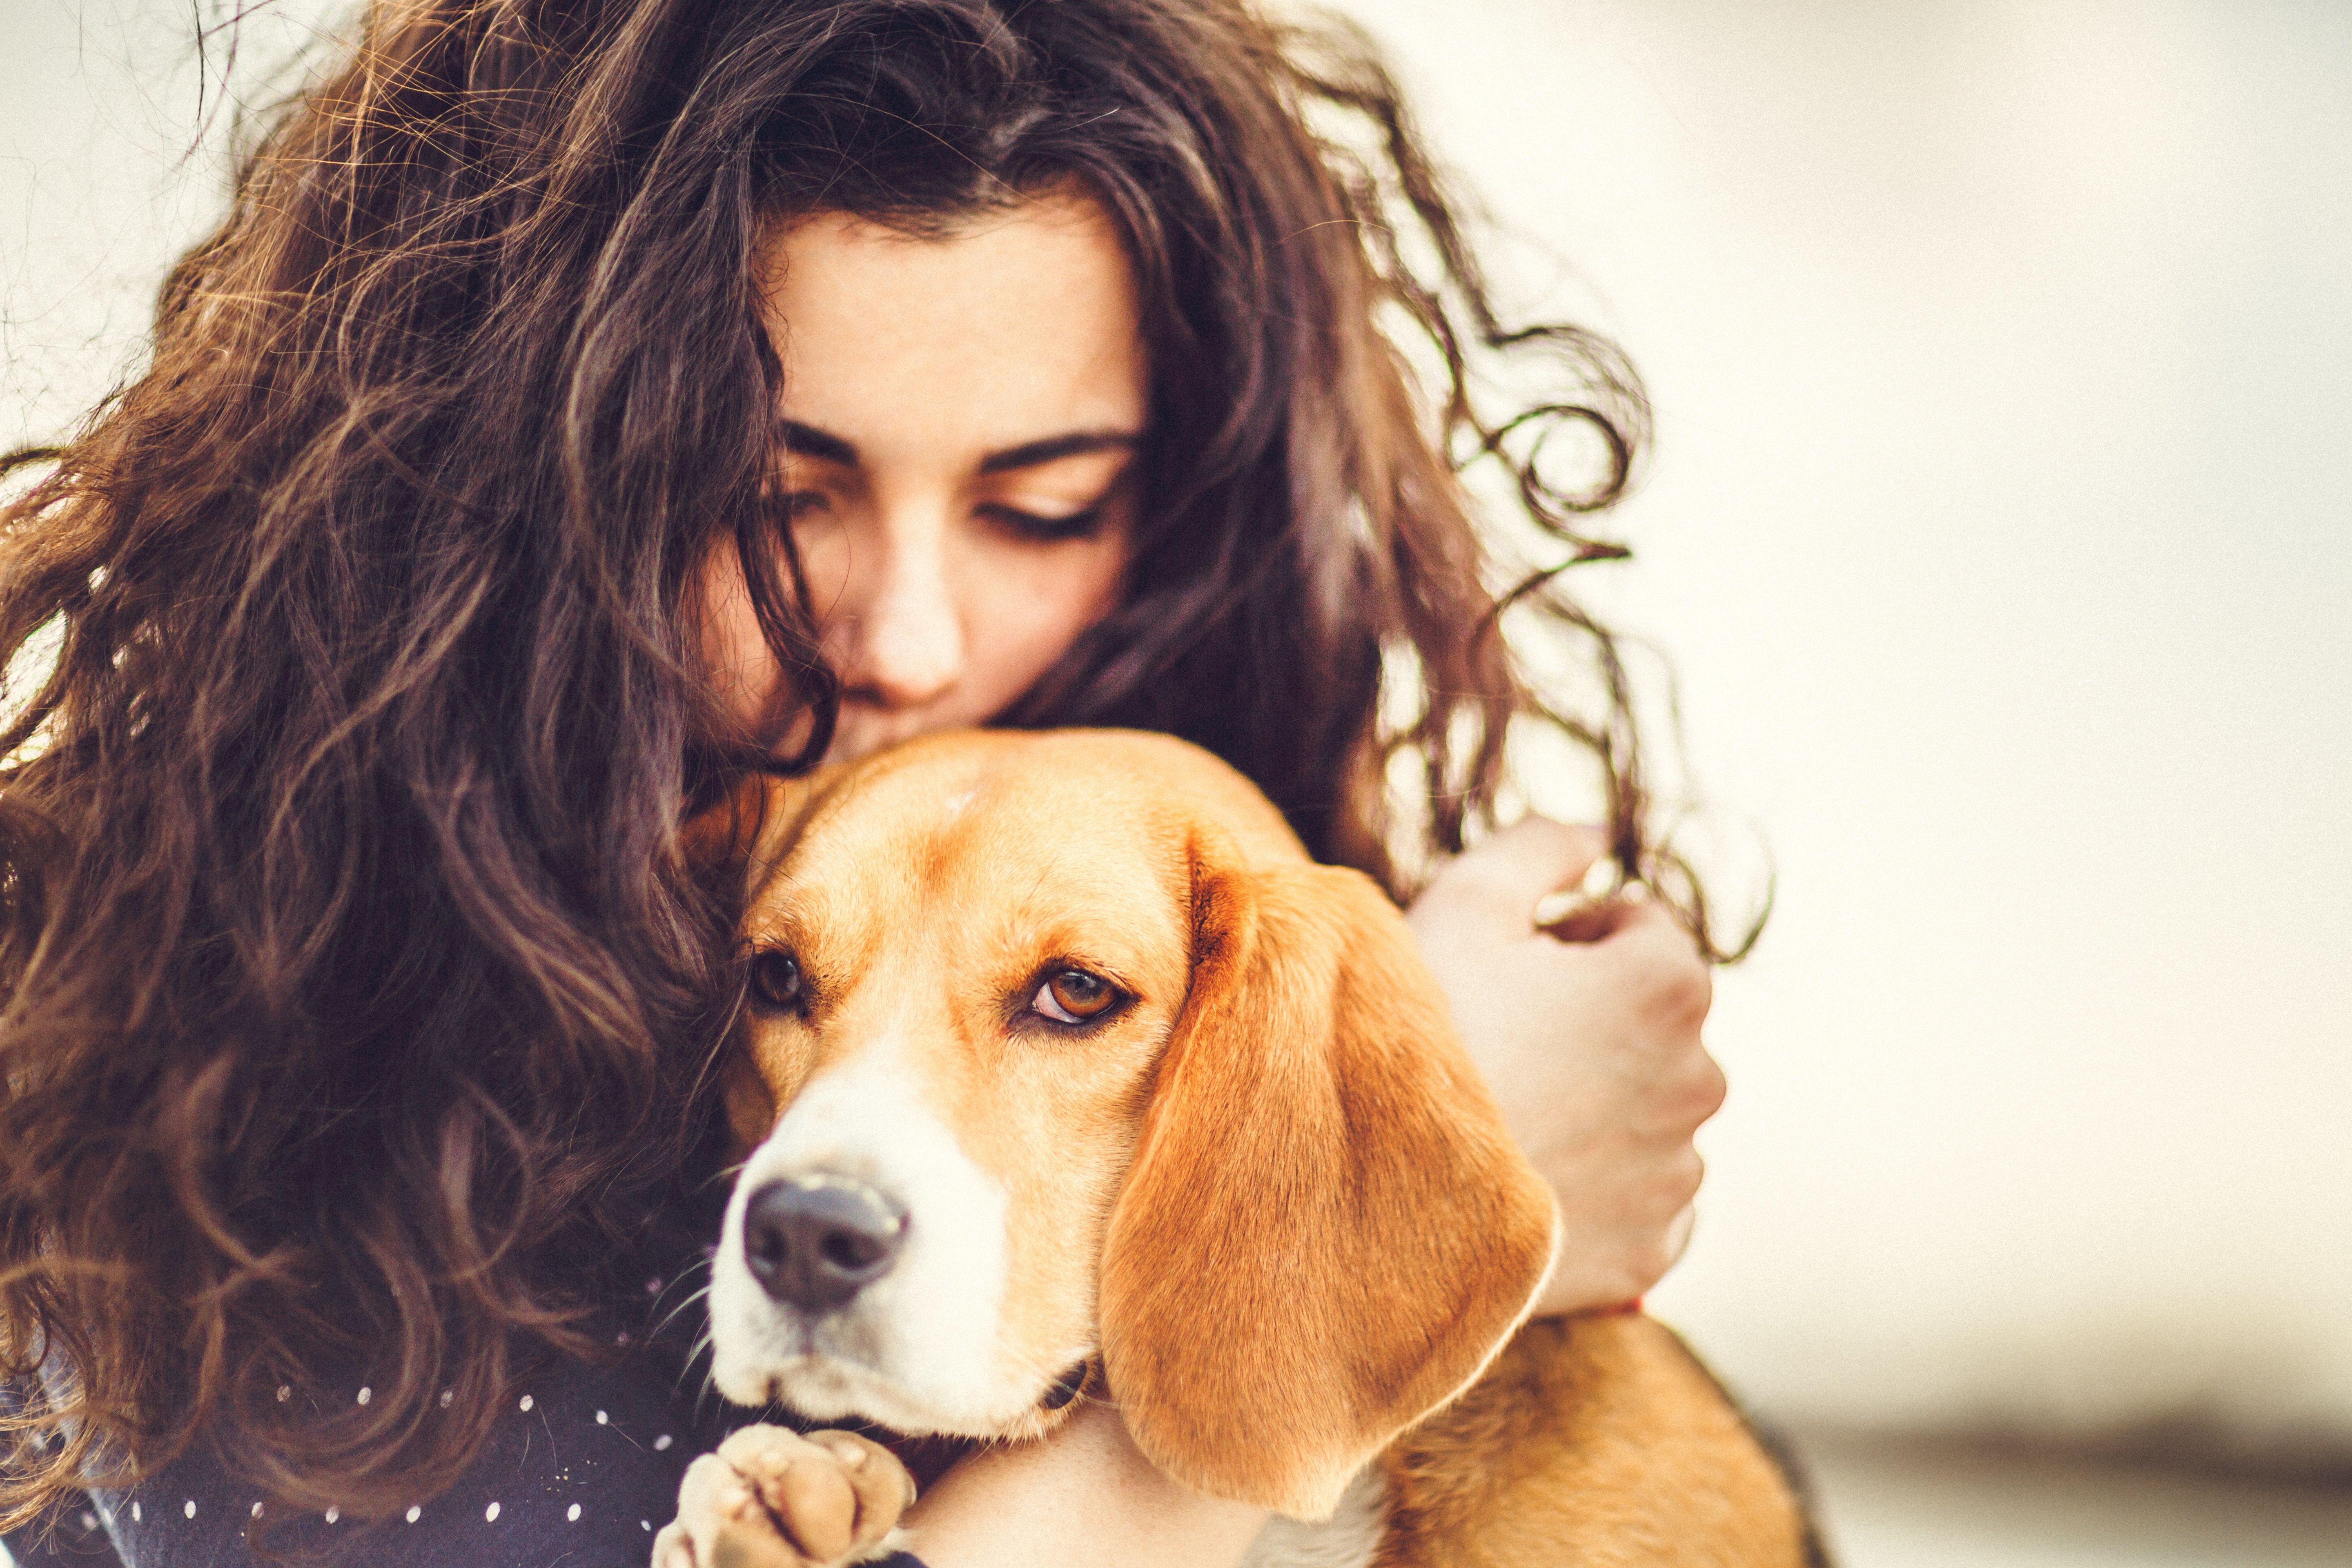 6 Reasons You Should Get The Dog You've Always